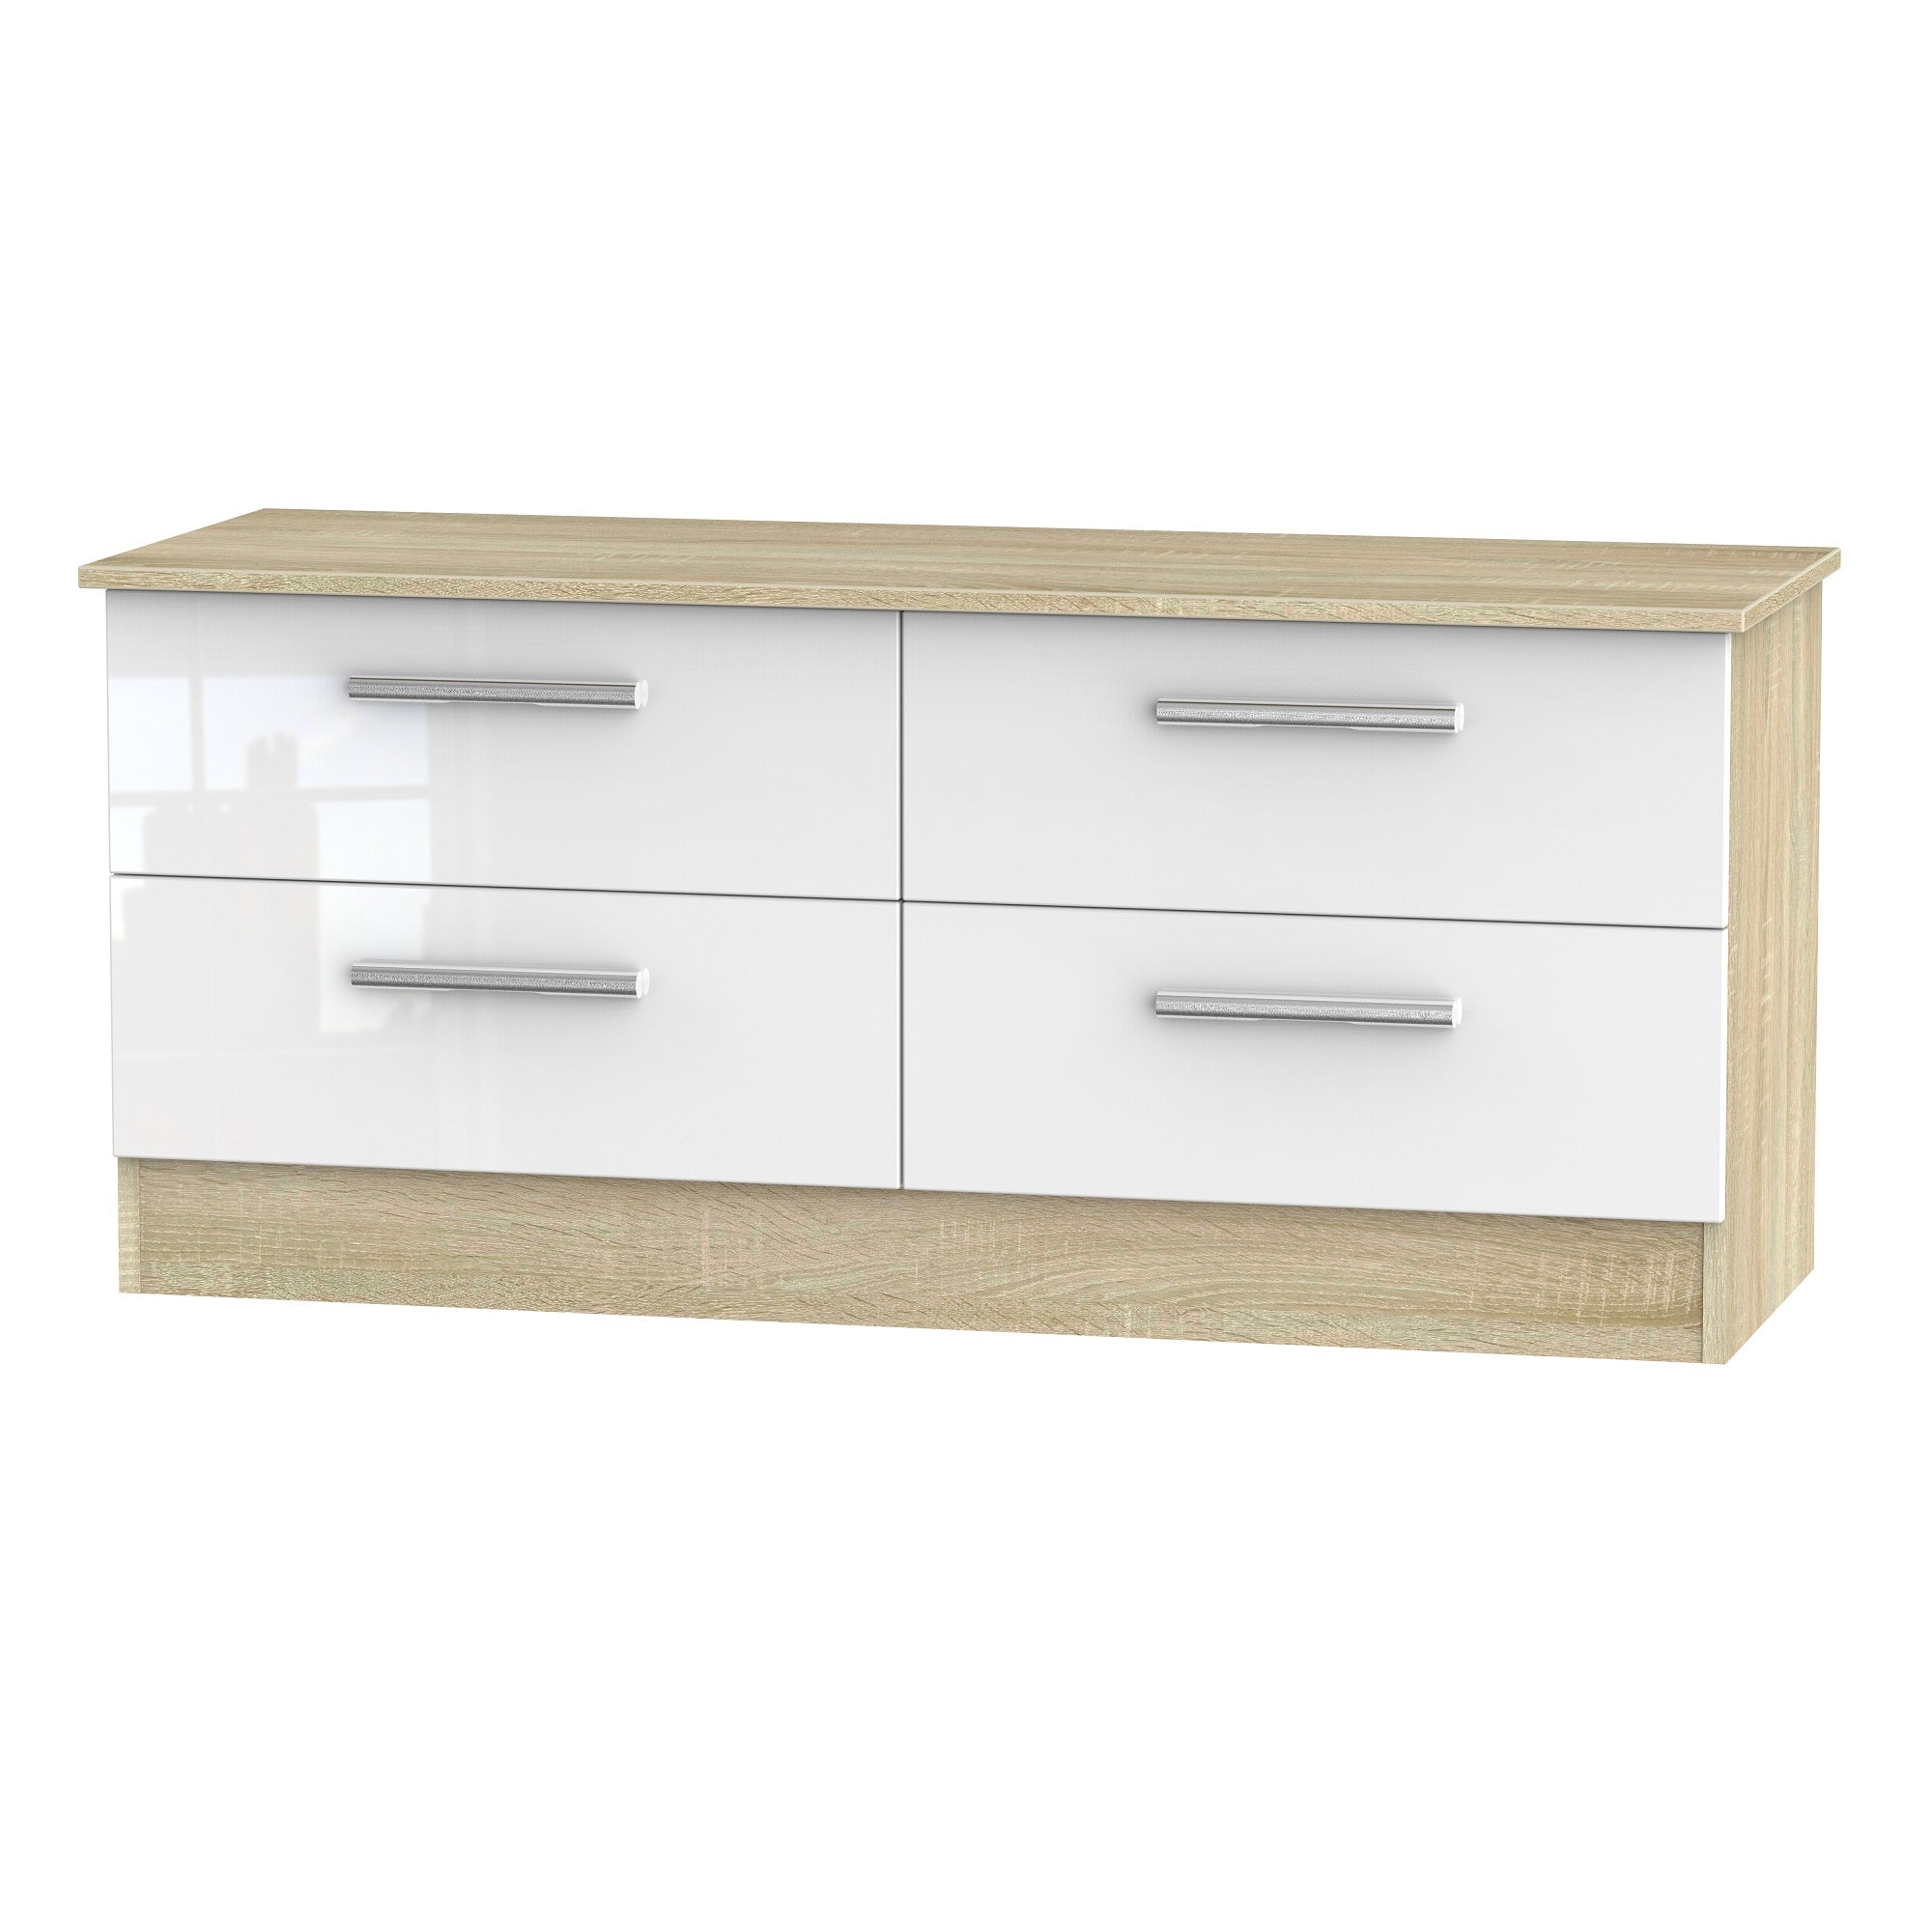 Cheap and Cheerful Ottoman and Bed End Storage In White Gloss and Oak